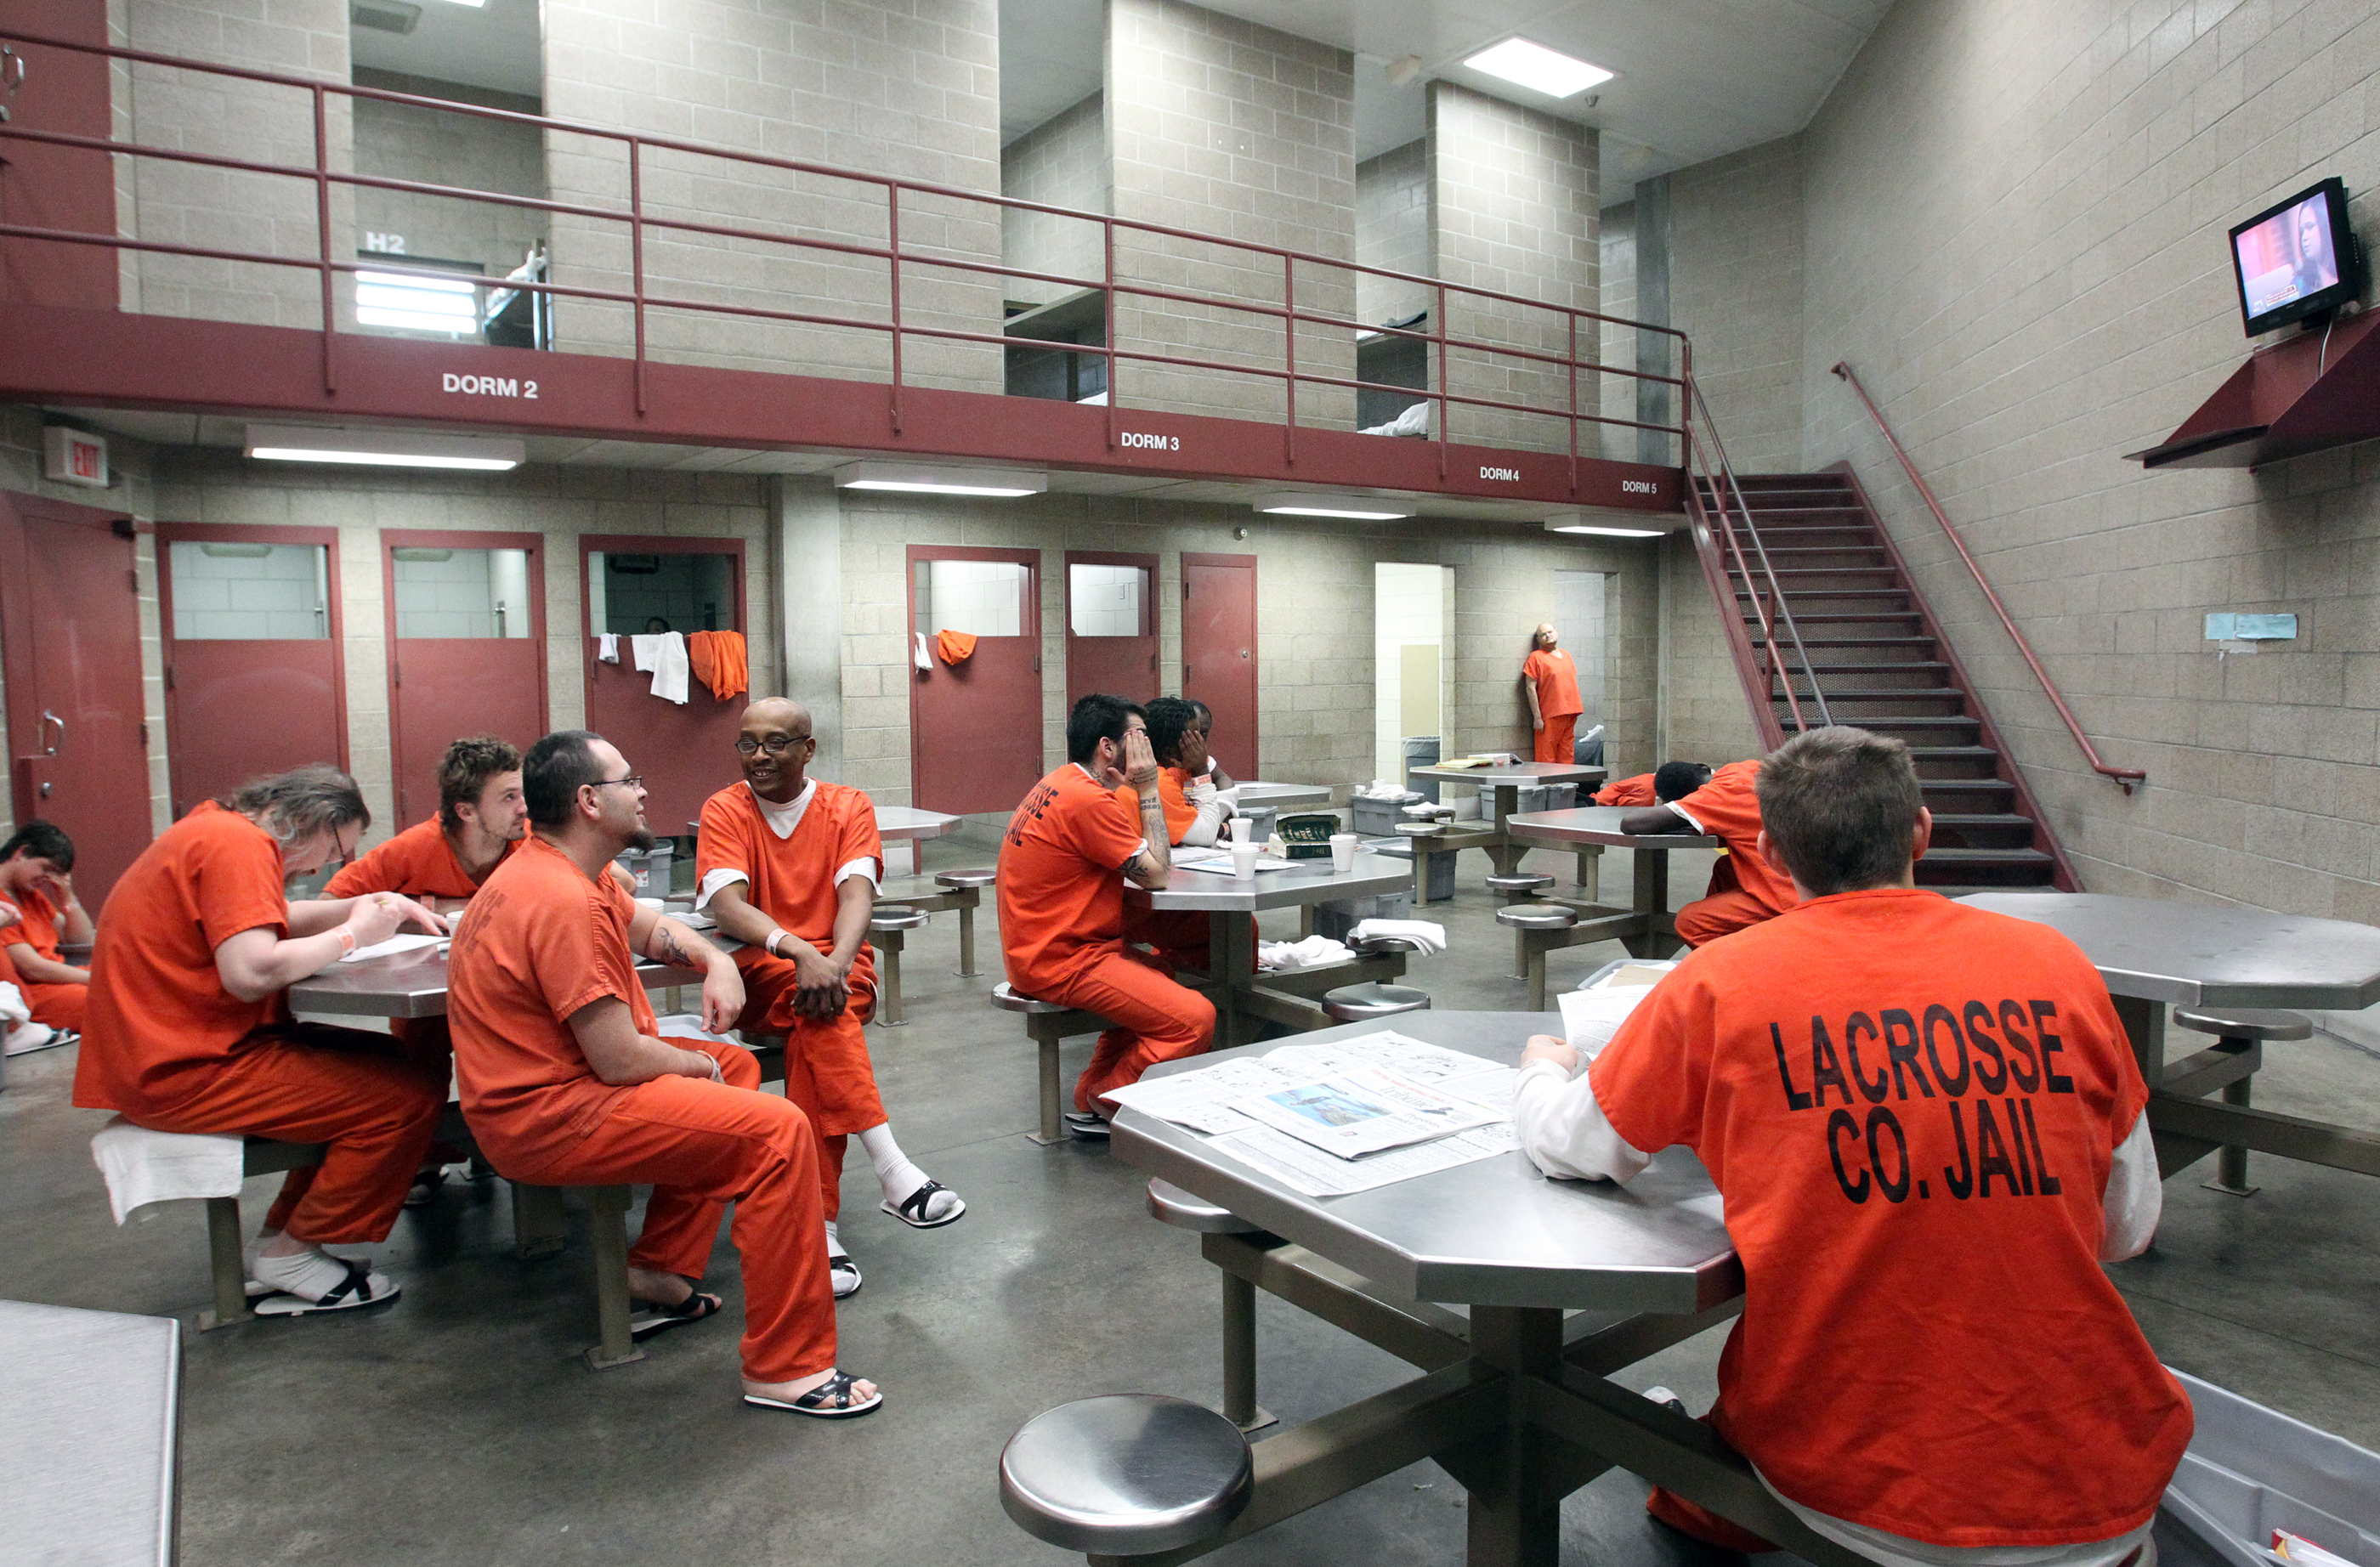 a personal narrative on visiting the vista county jail The alumni association was established in 2009 by patrick covington and three other participants in the cook county sheriff's day reporting center who formed their own informal recovery group.